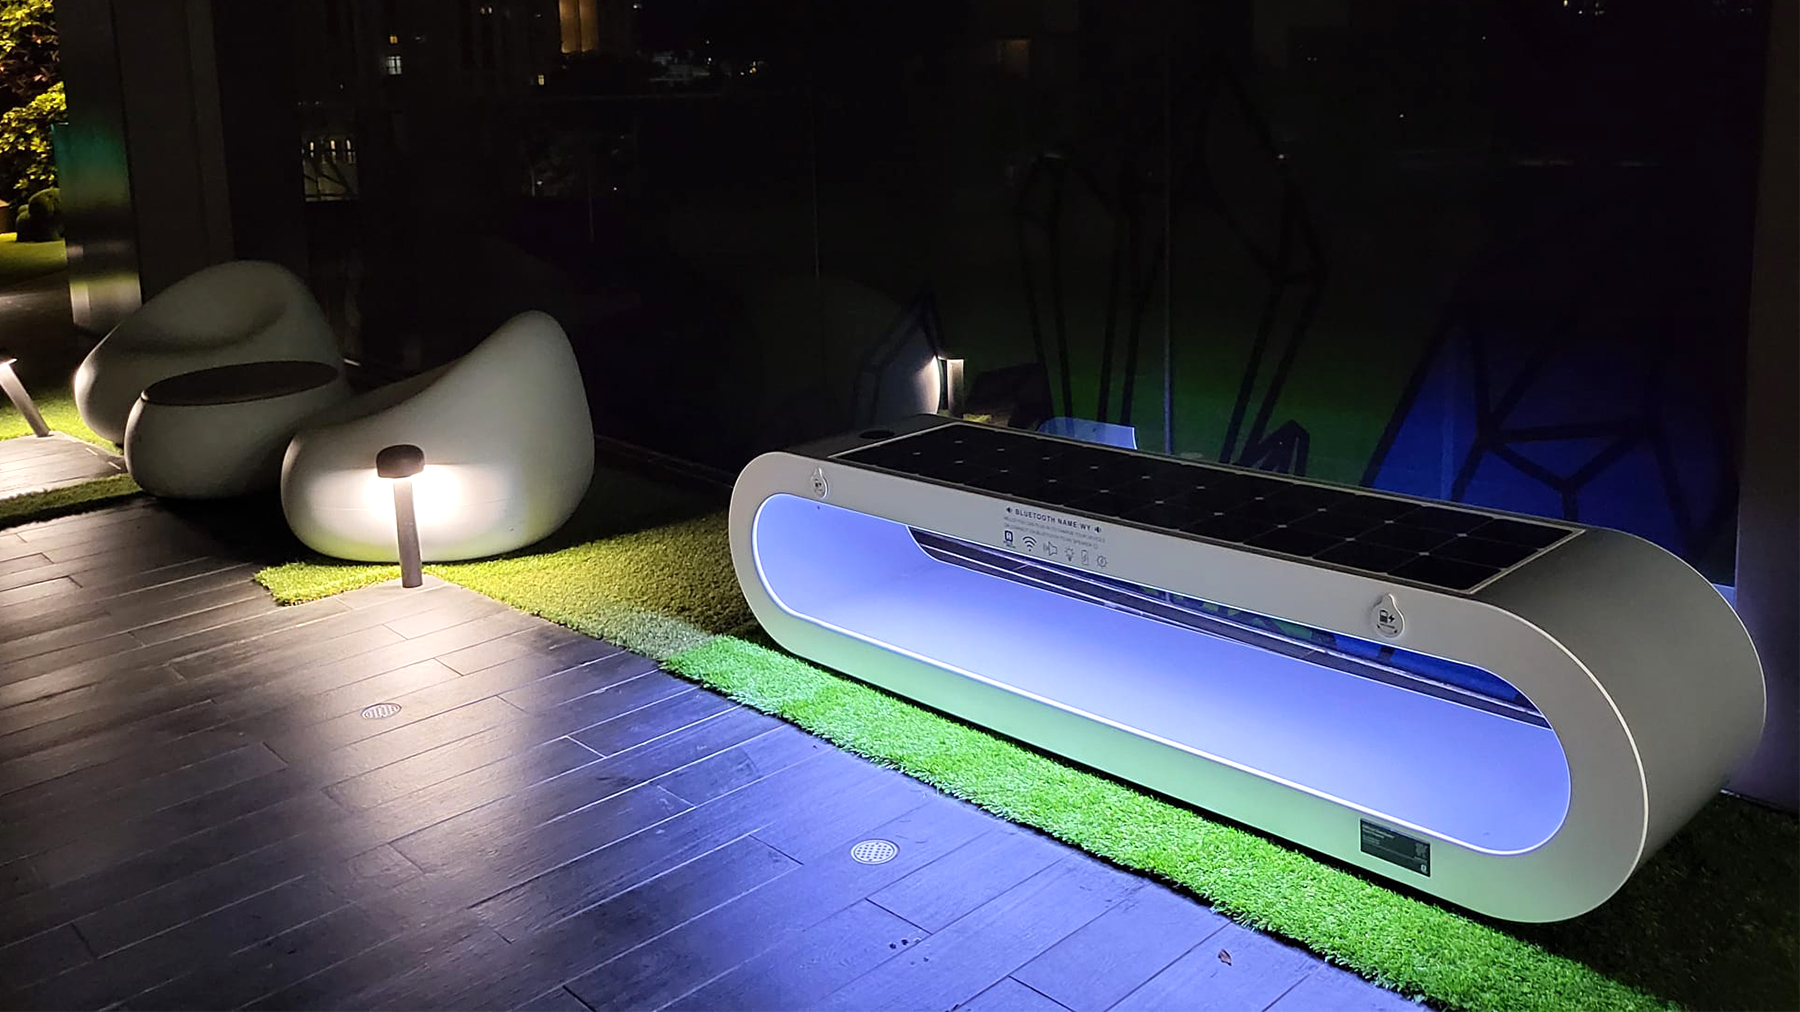 GreatWorldCity_SmartBench__Feat_01.jpg